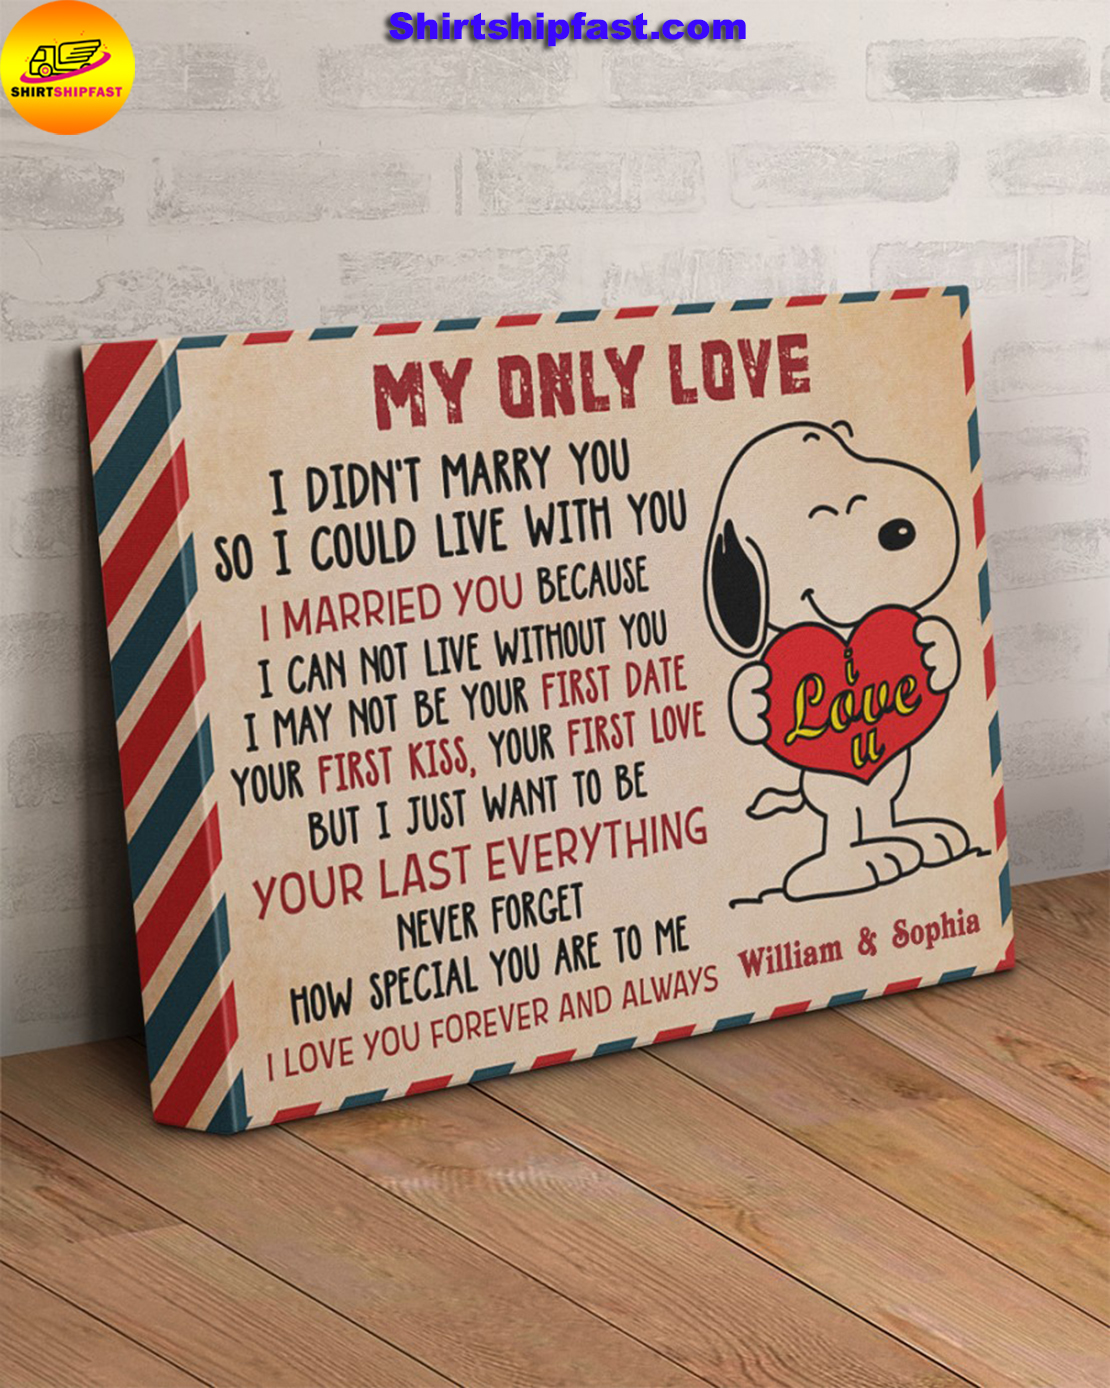 Personalized Snoopy My only love I did'nt marry you so I could live with you canvas - Picture 2